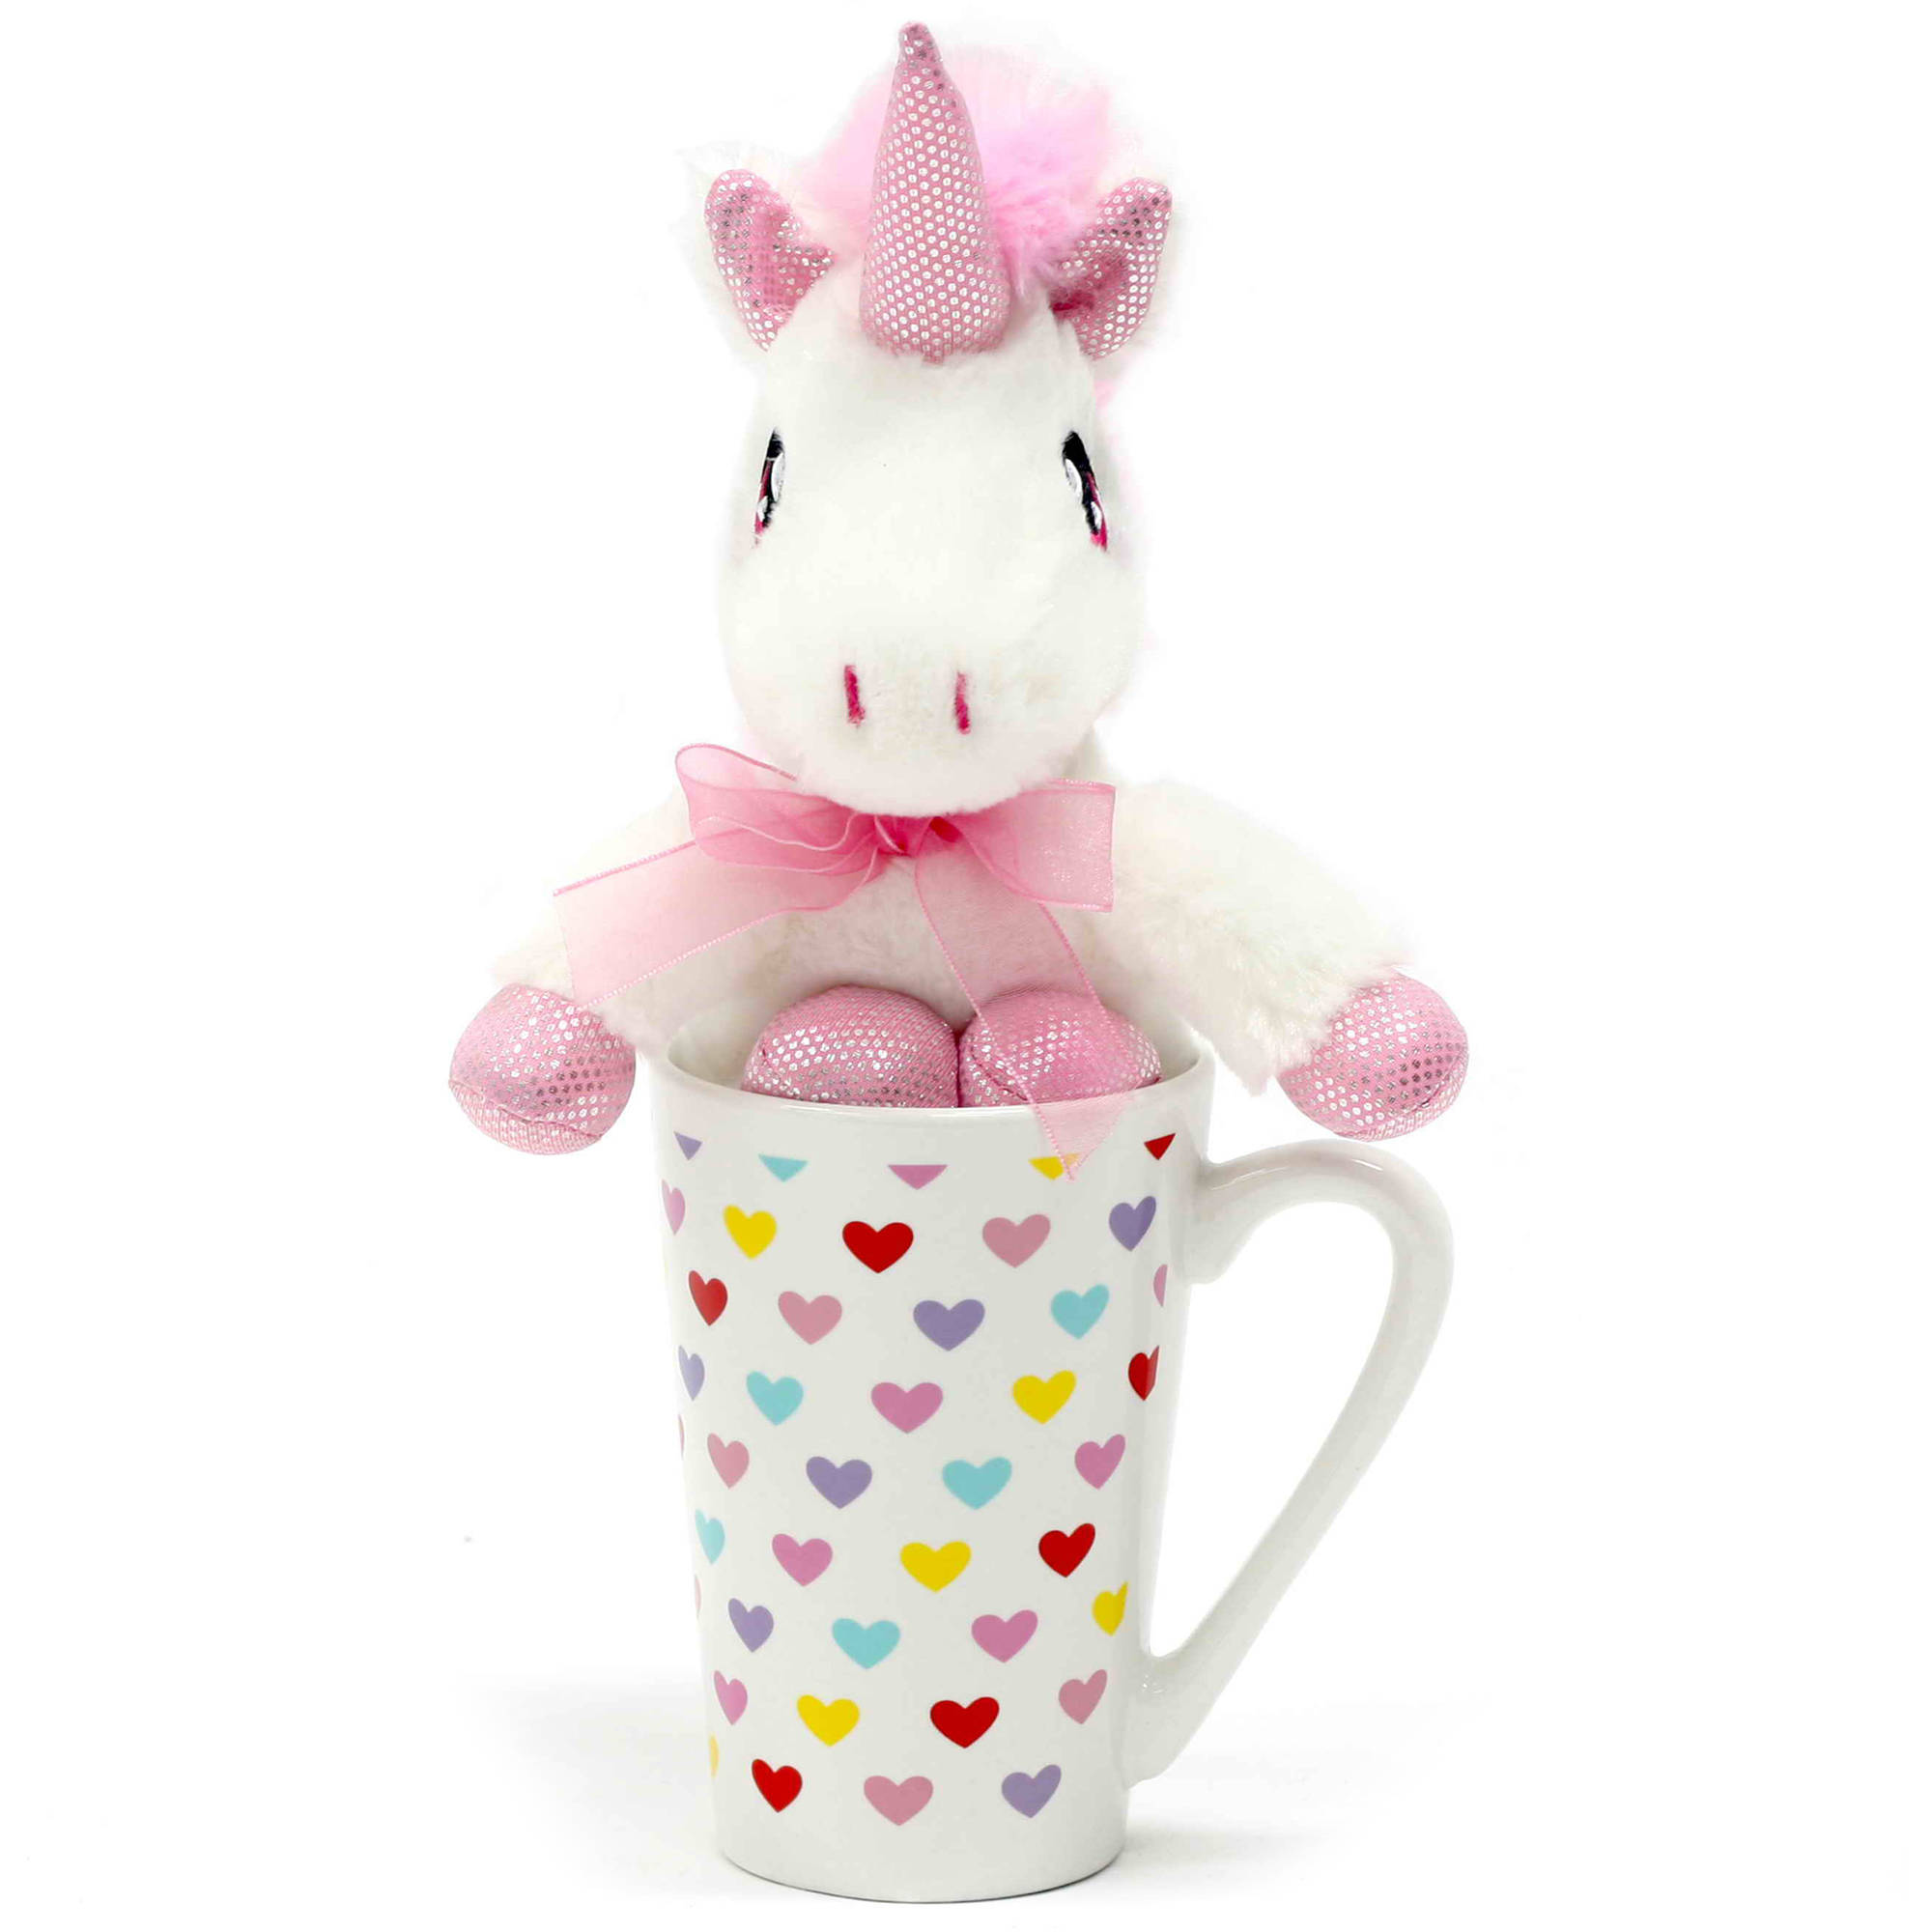 valentine's day plush animal in latte mug gift set - walmart, Ideas